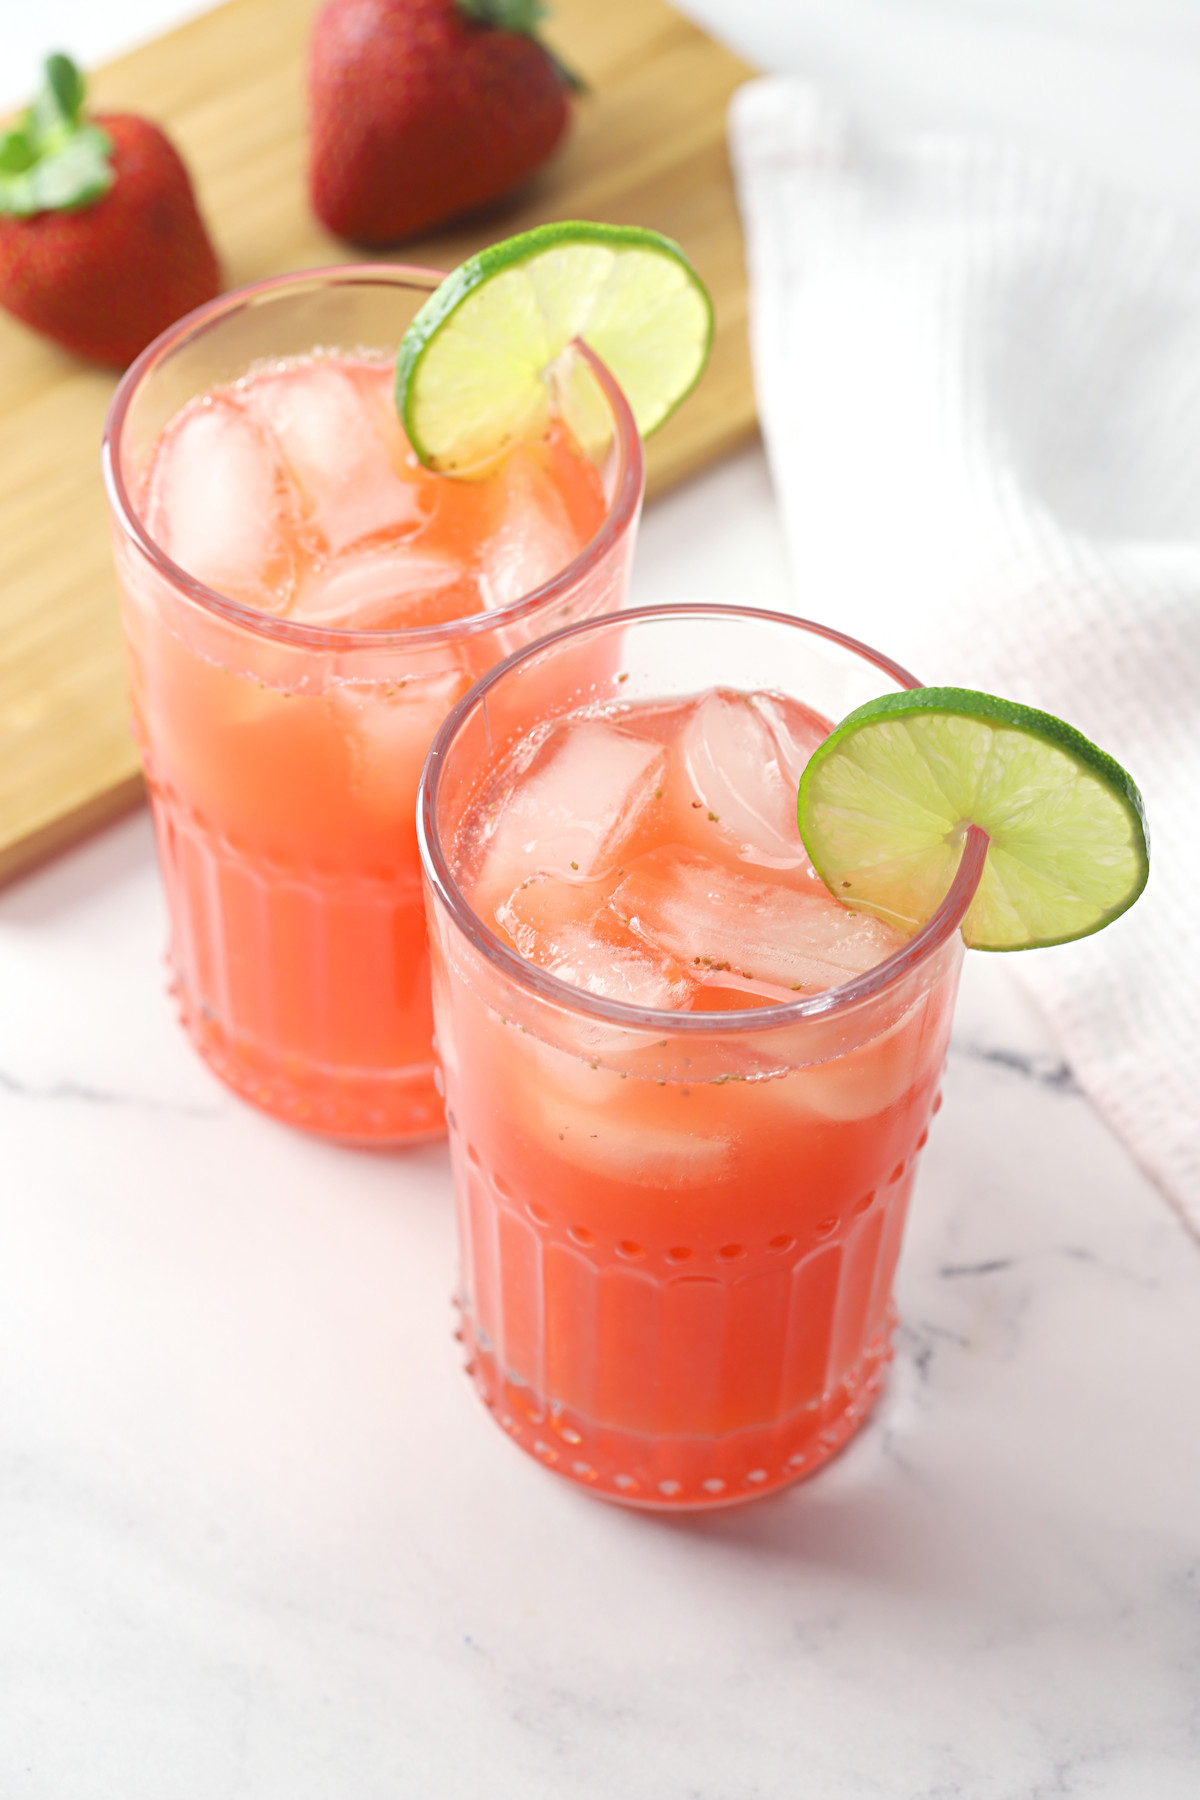 Two glasses of strawberry limeade.